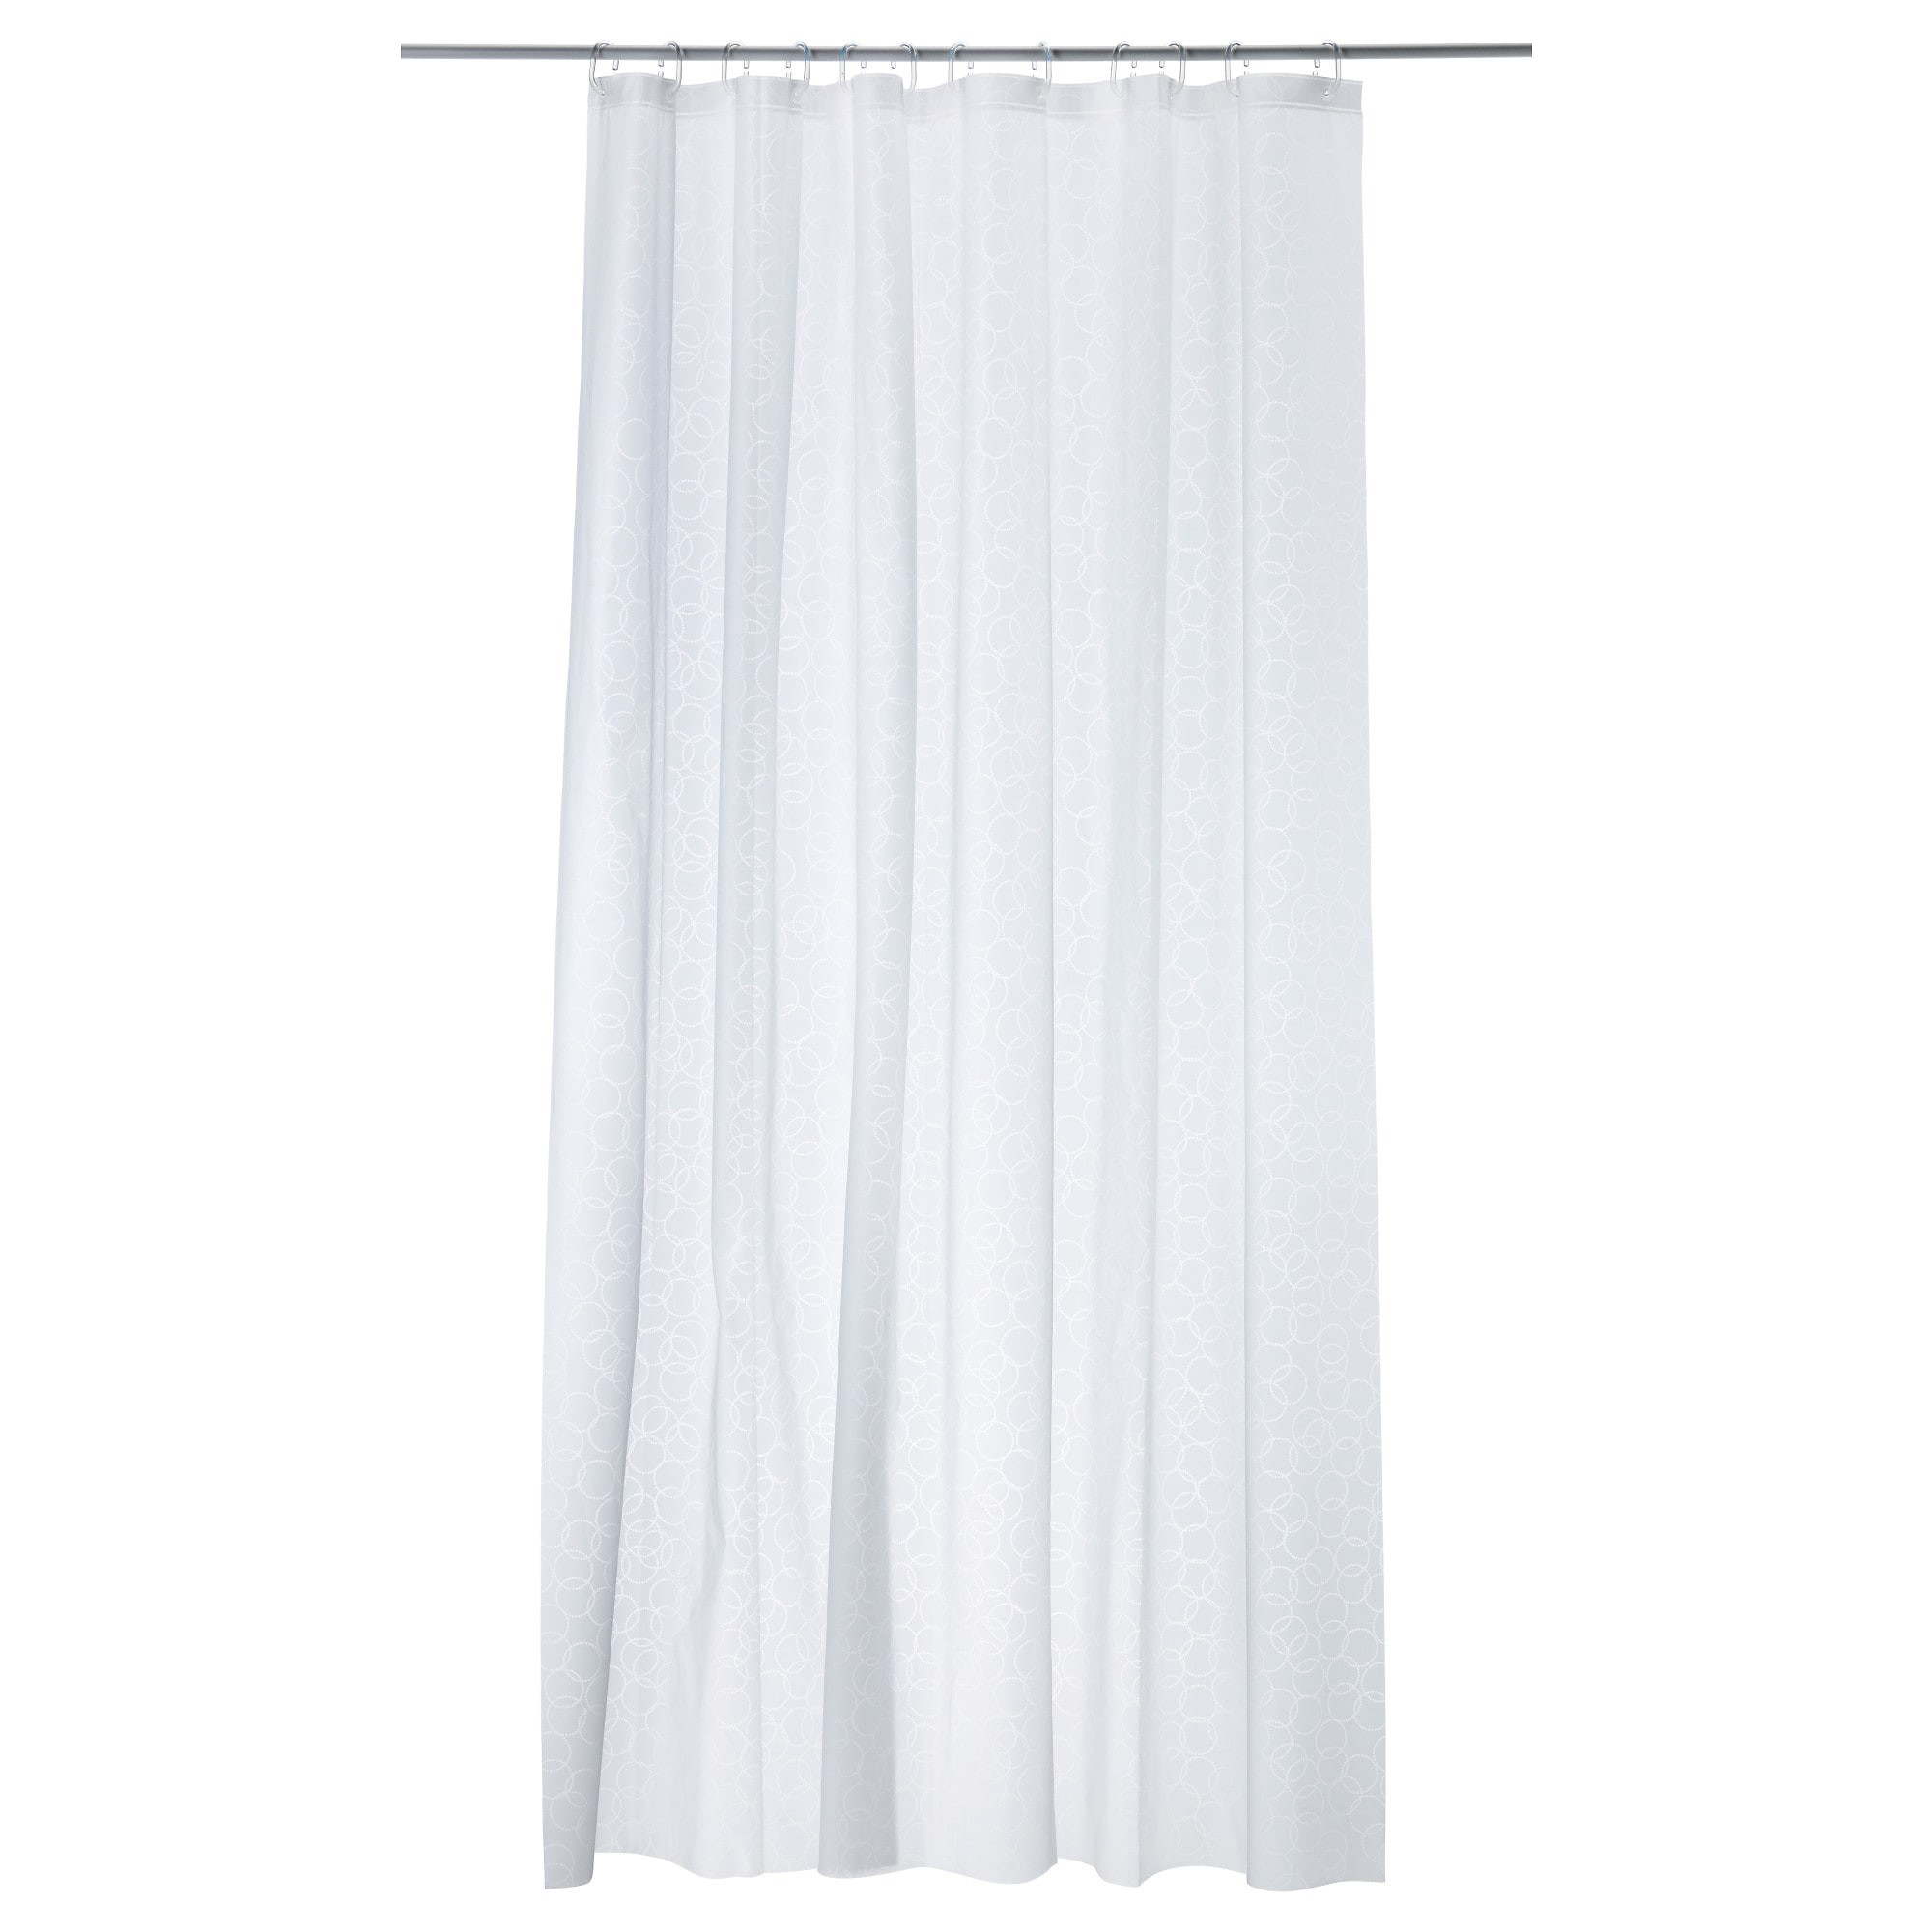 Toddler Shower Curtains